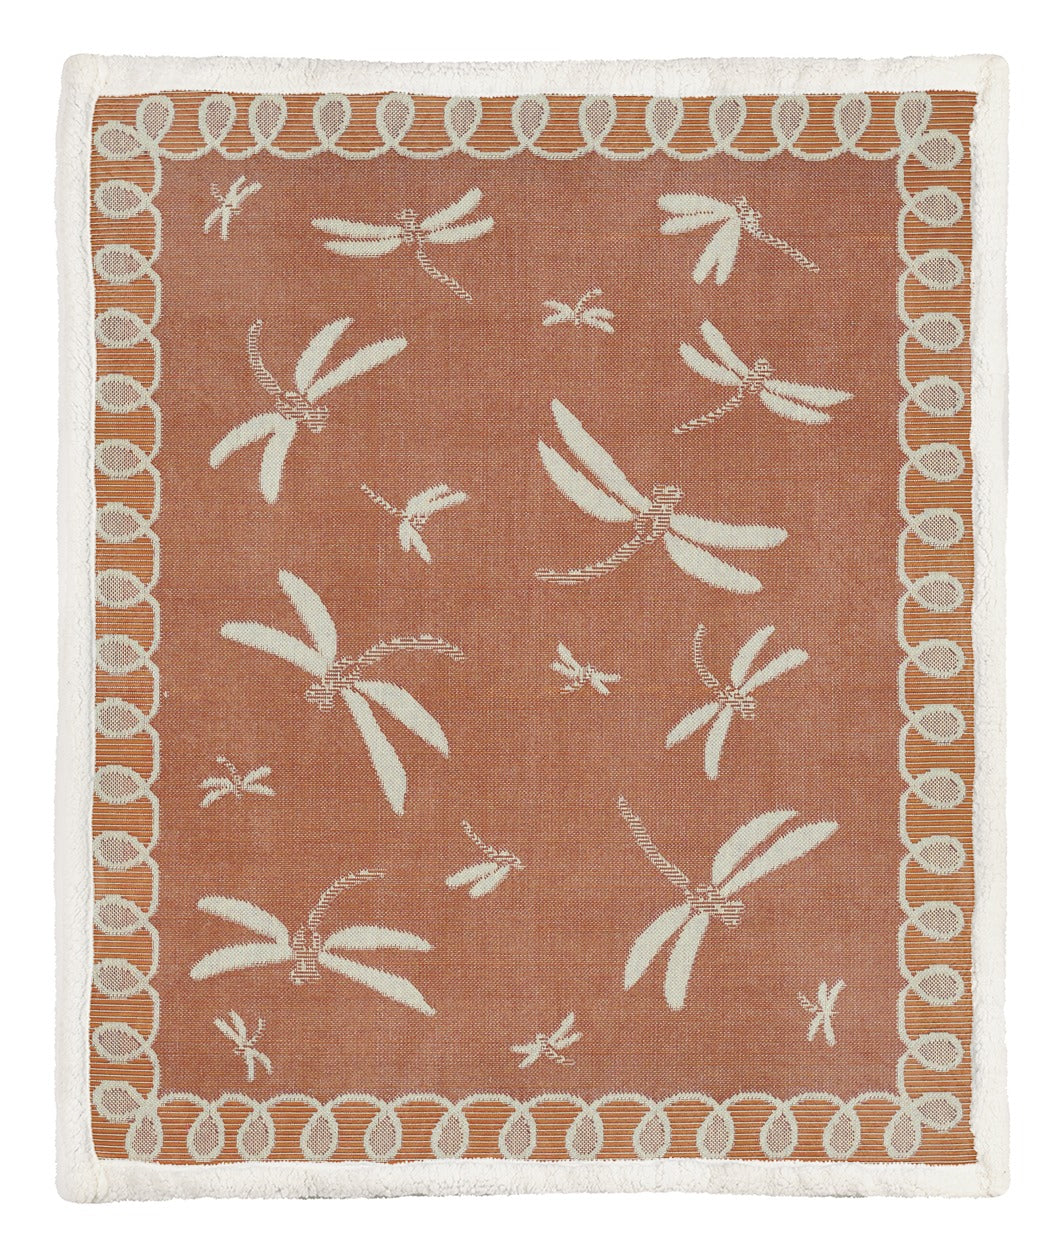 Dragonfly Throw Blanket CCC25102517